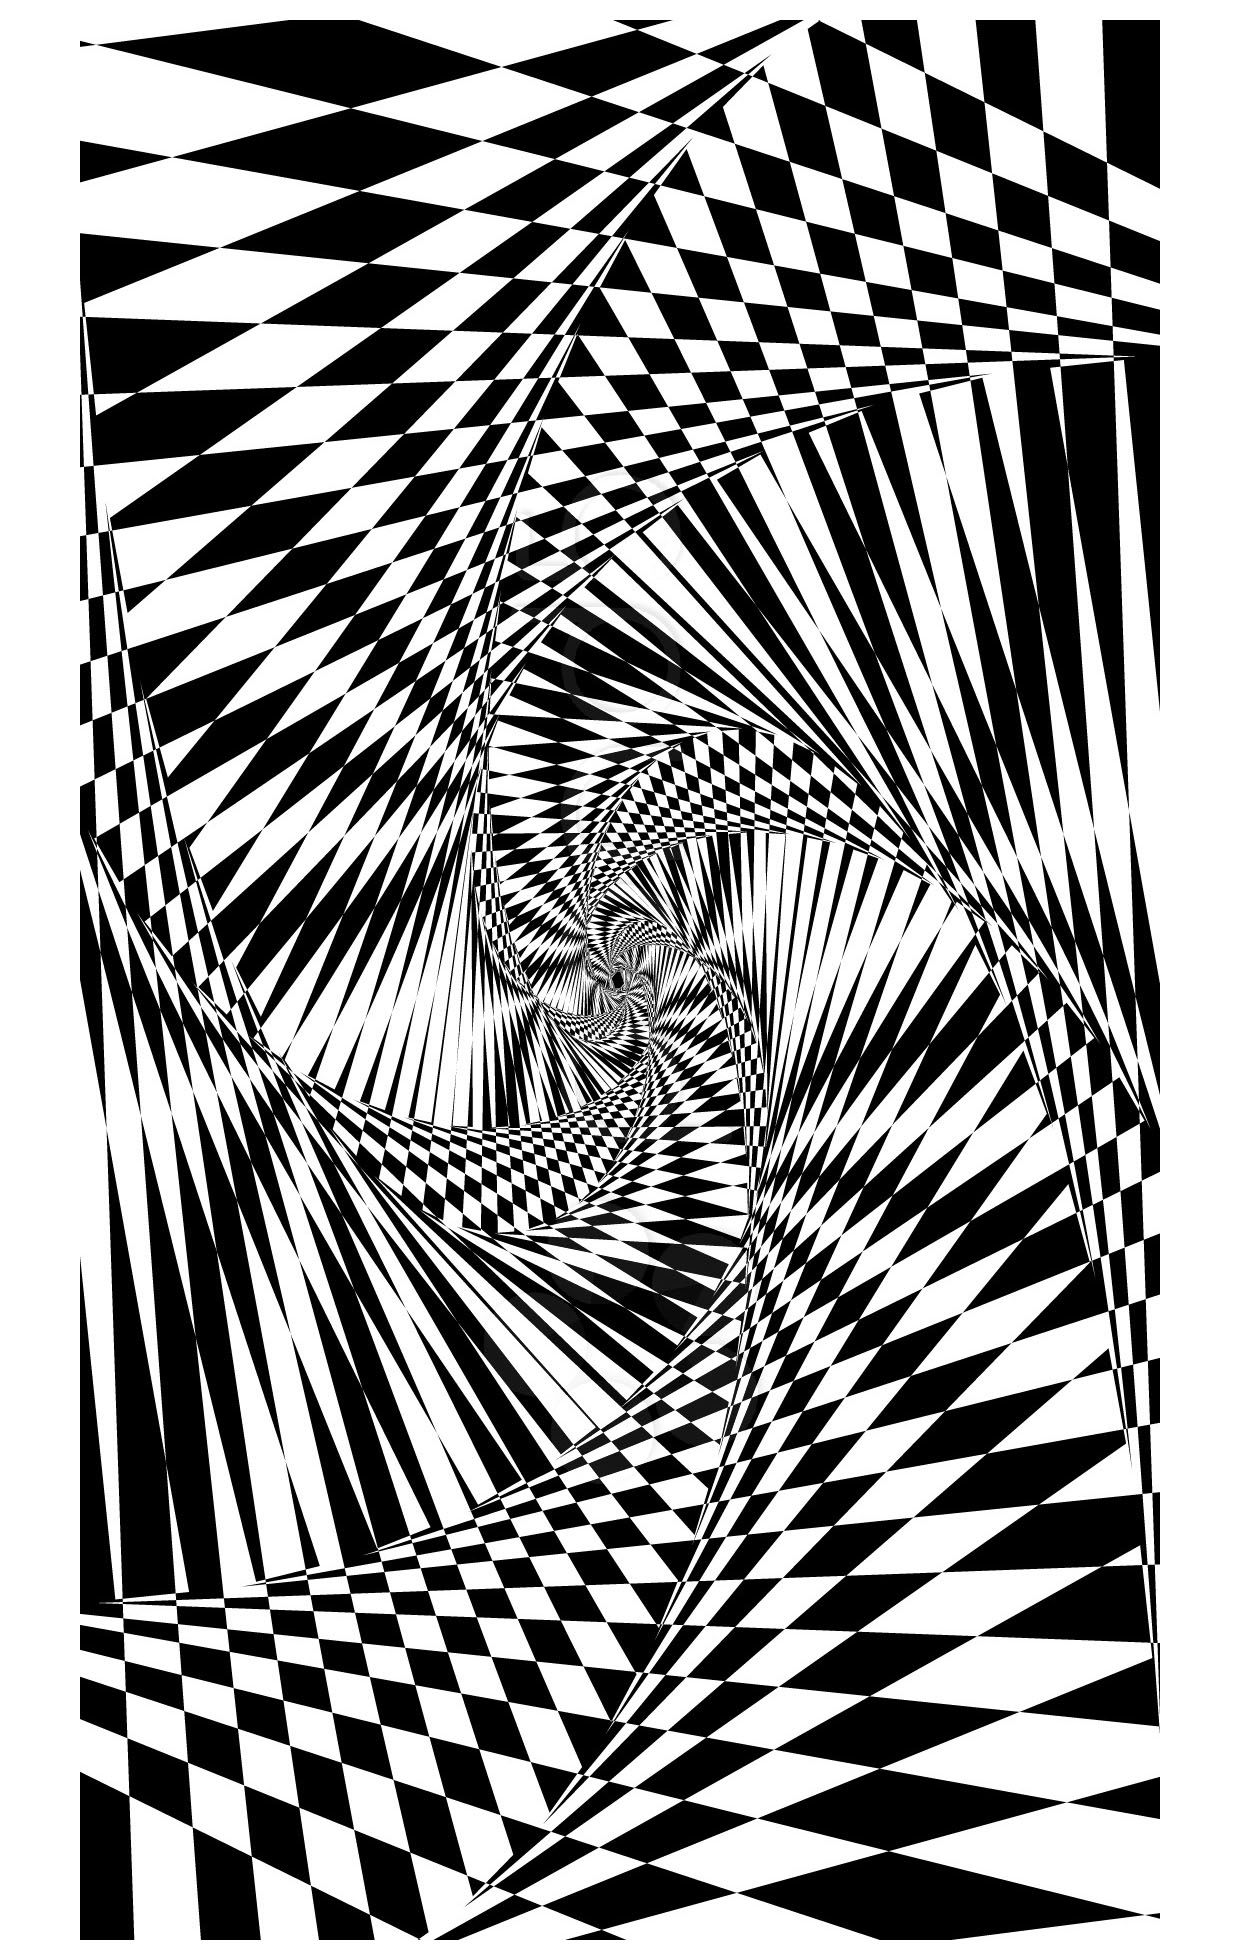 Psychedelic 1bis - Psychedelic Coloring Pages for Adults ...